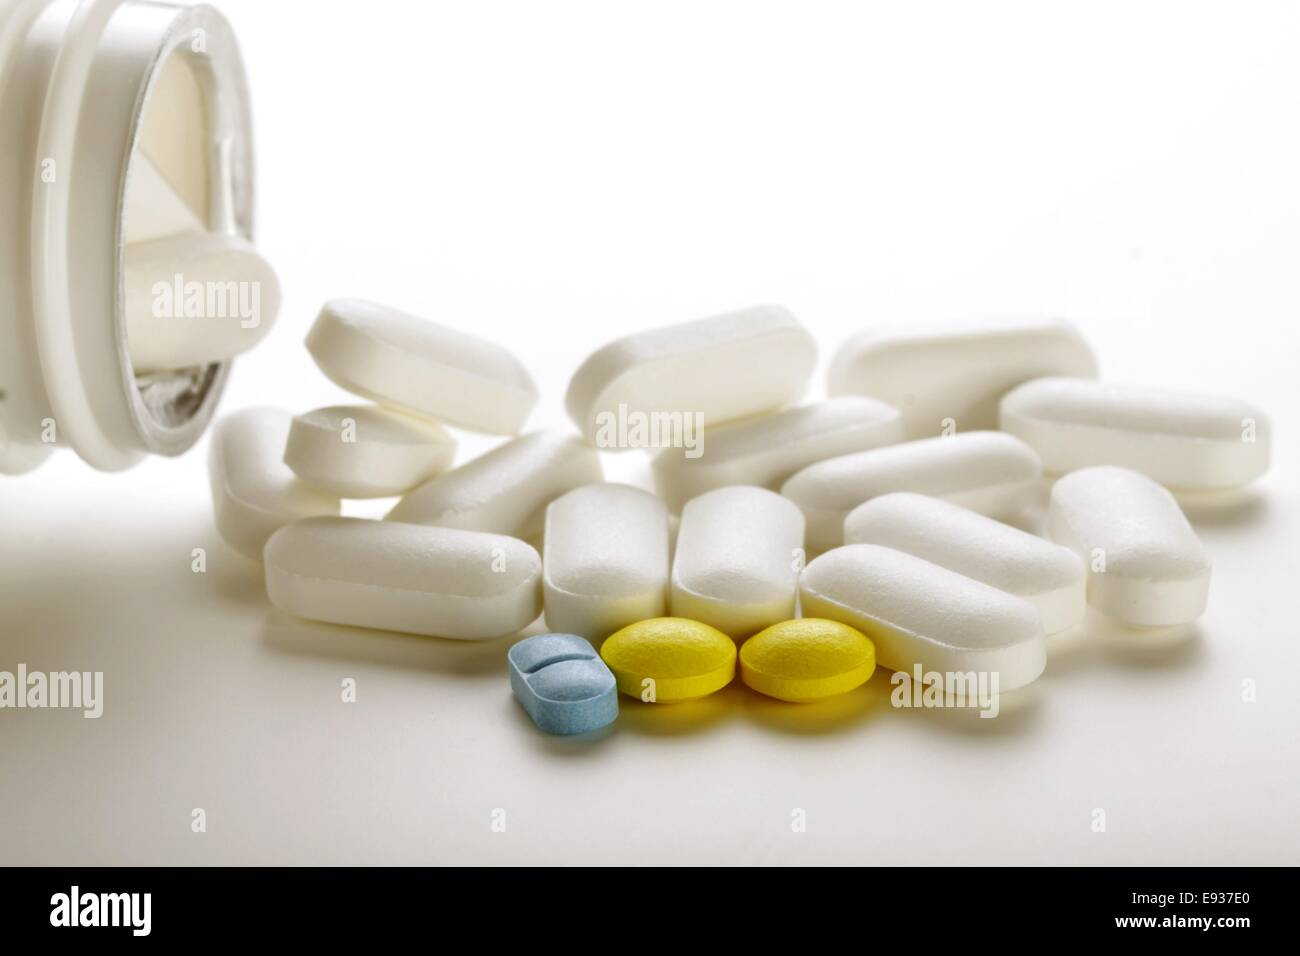 pills for flu and colds - Stock Image